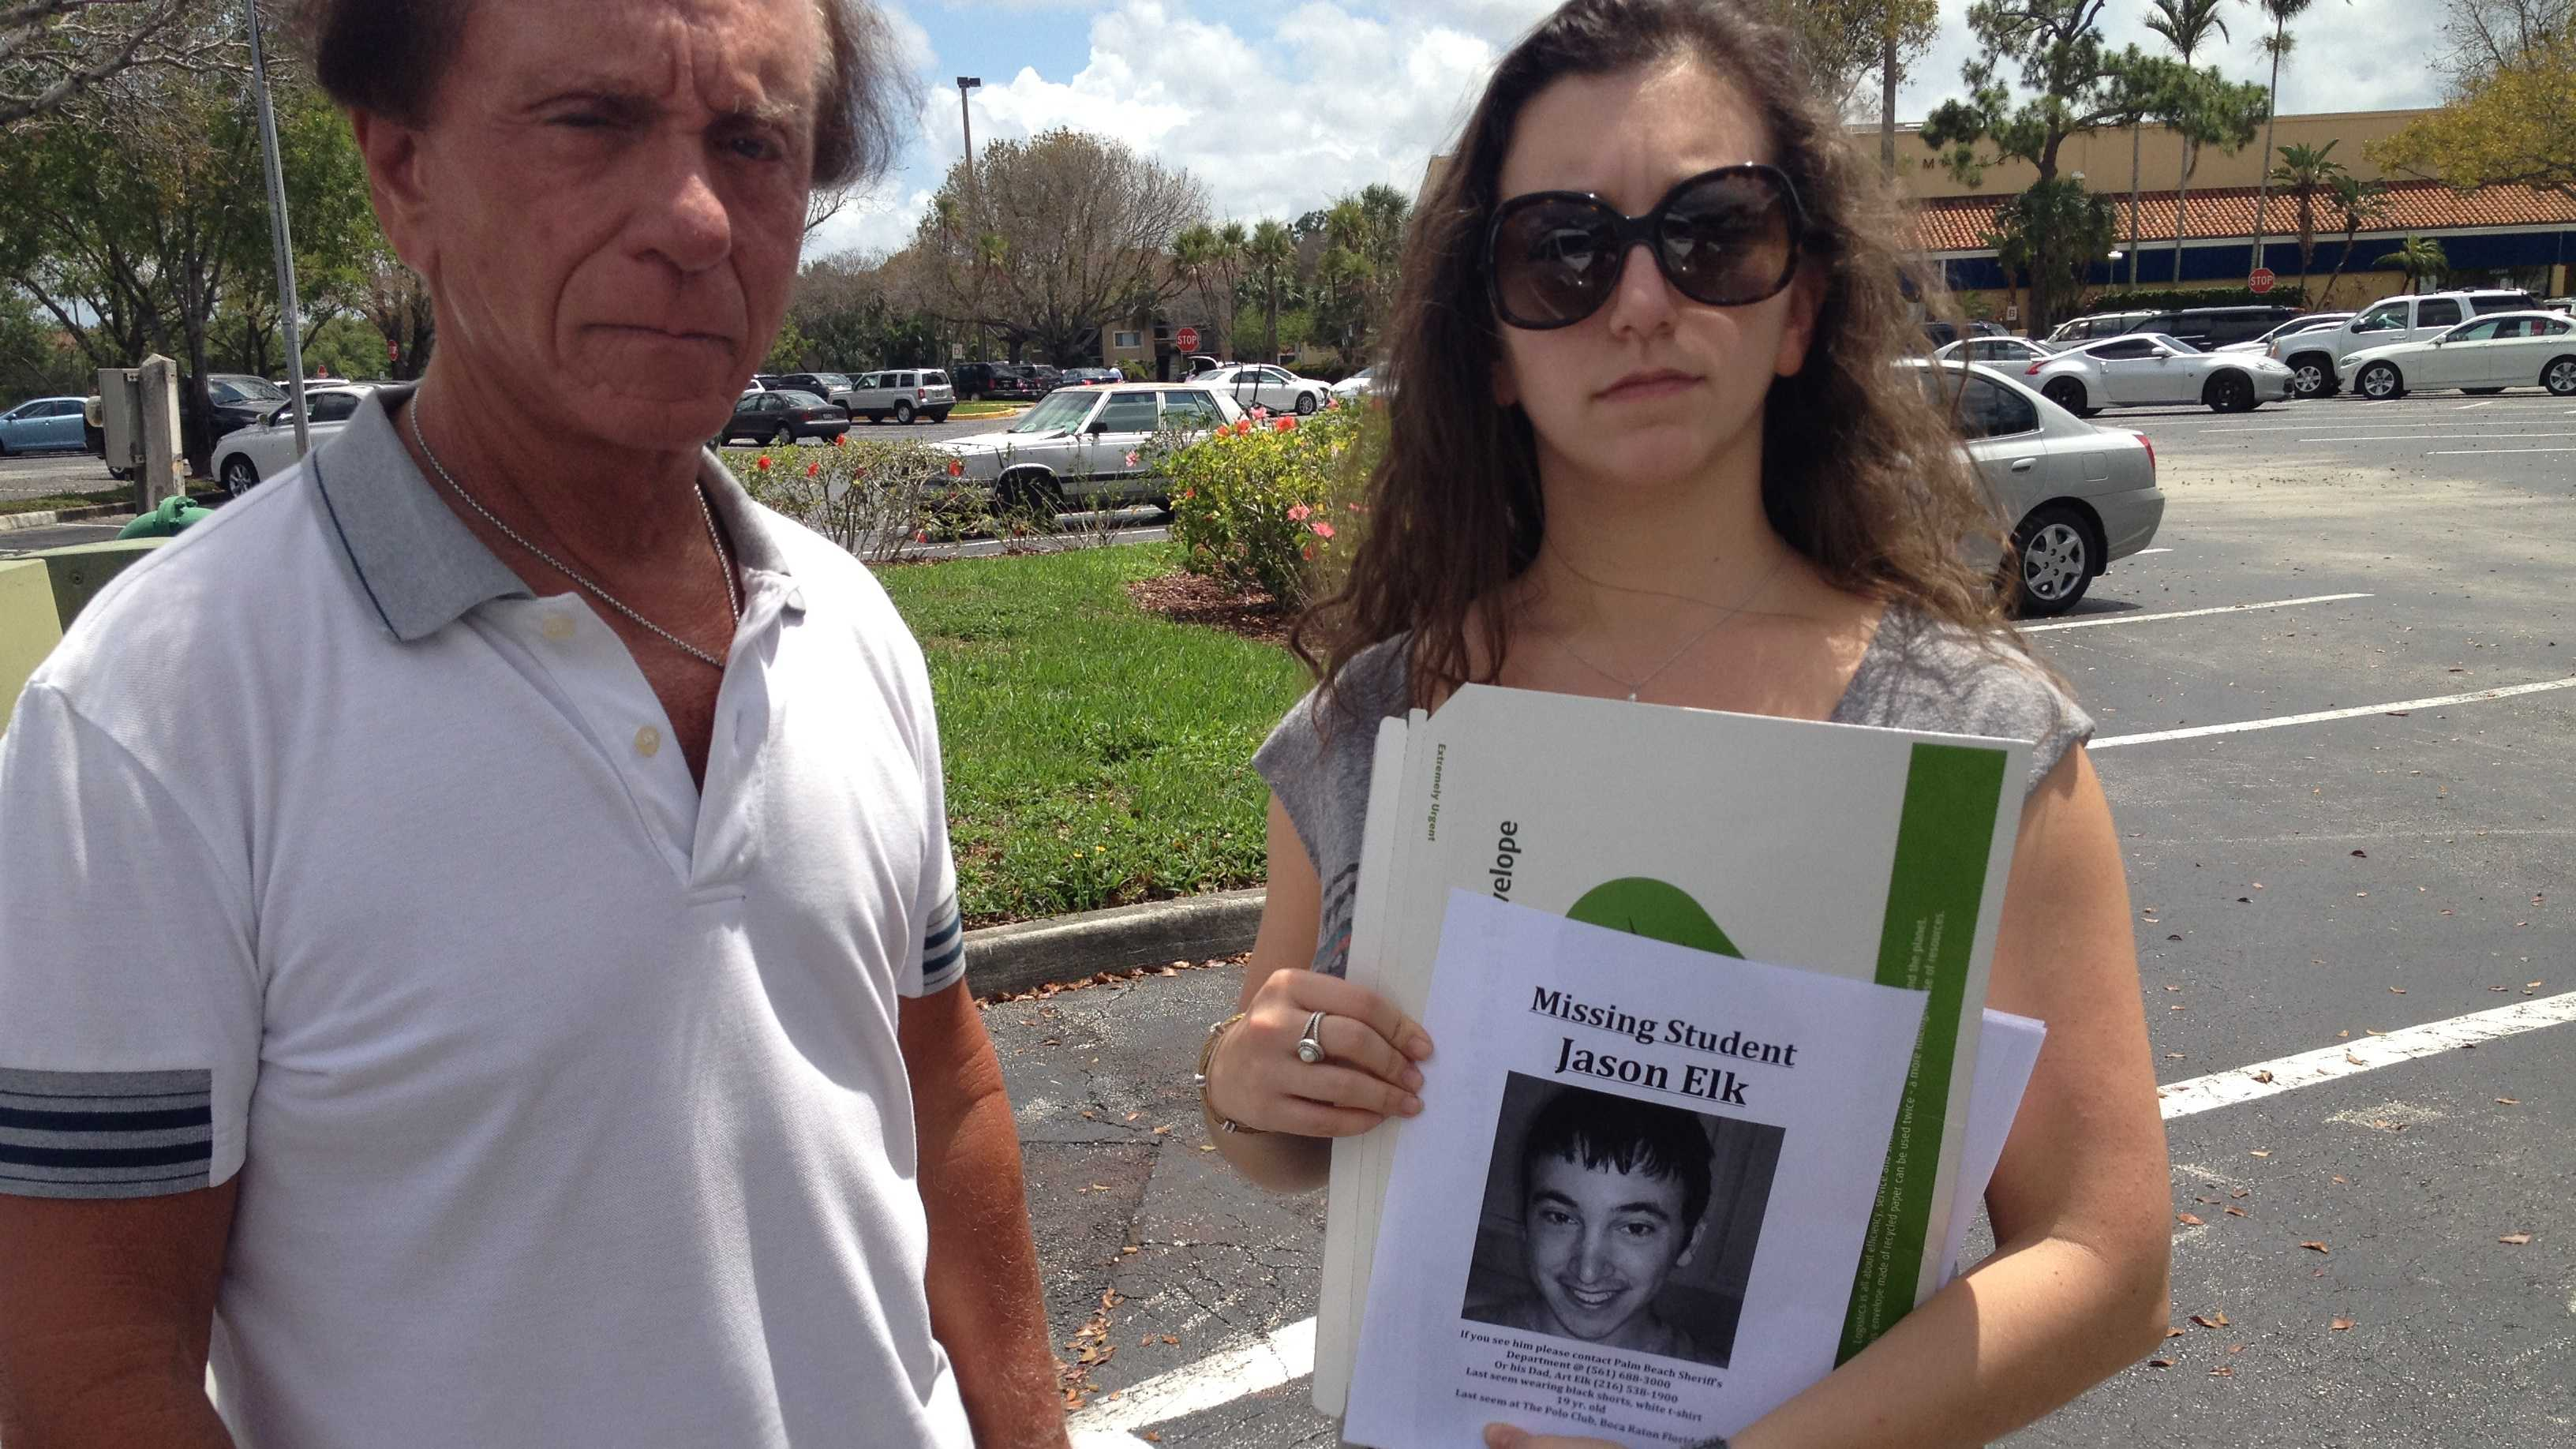 Arthur Elk and his daughter, Hillary, are searching for Lynn University student Jason Elk.